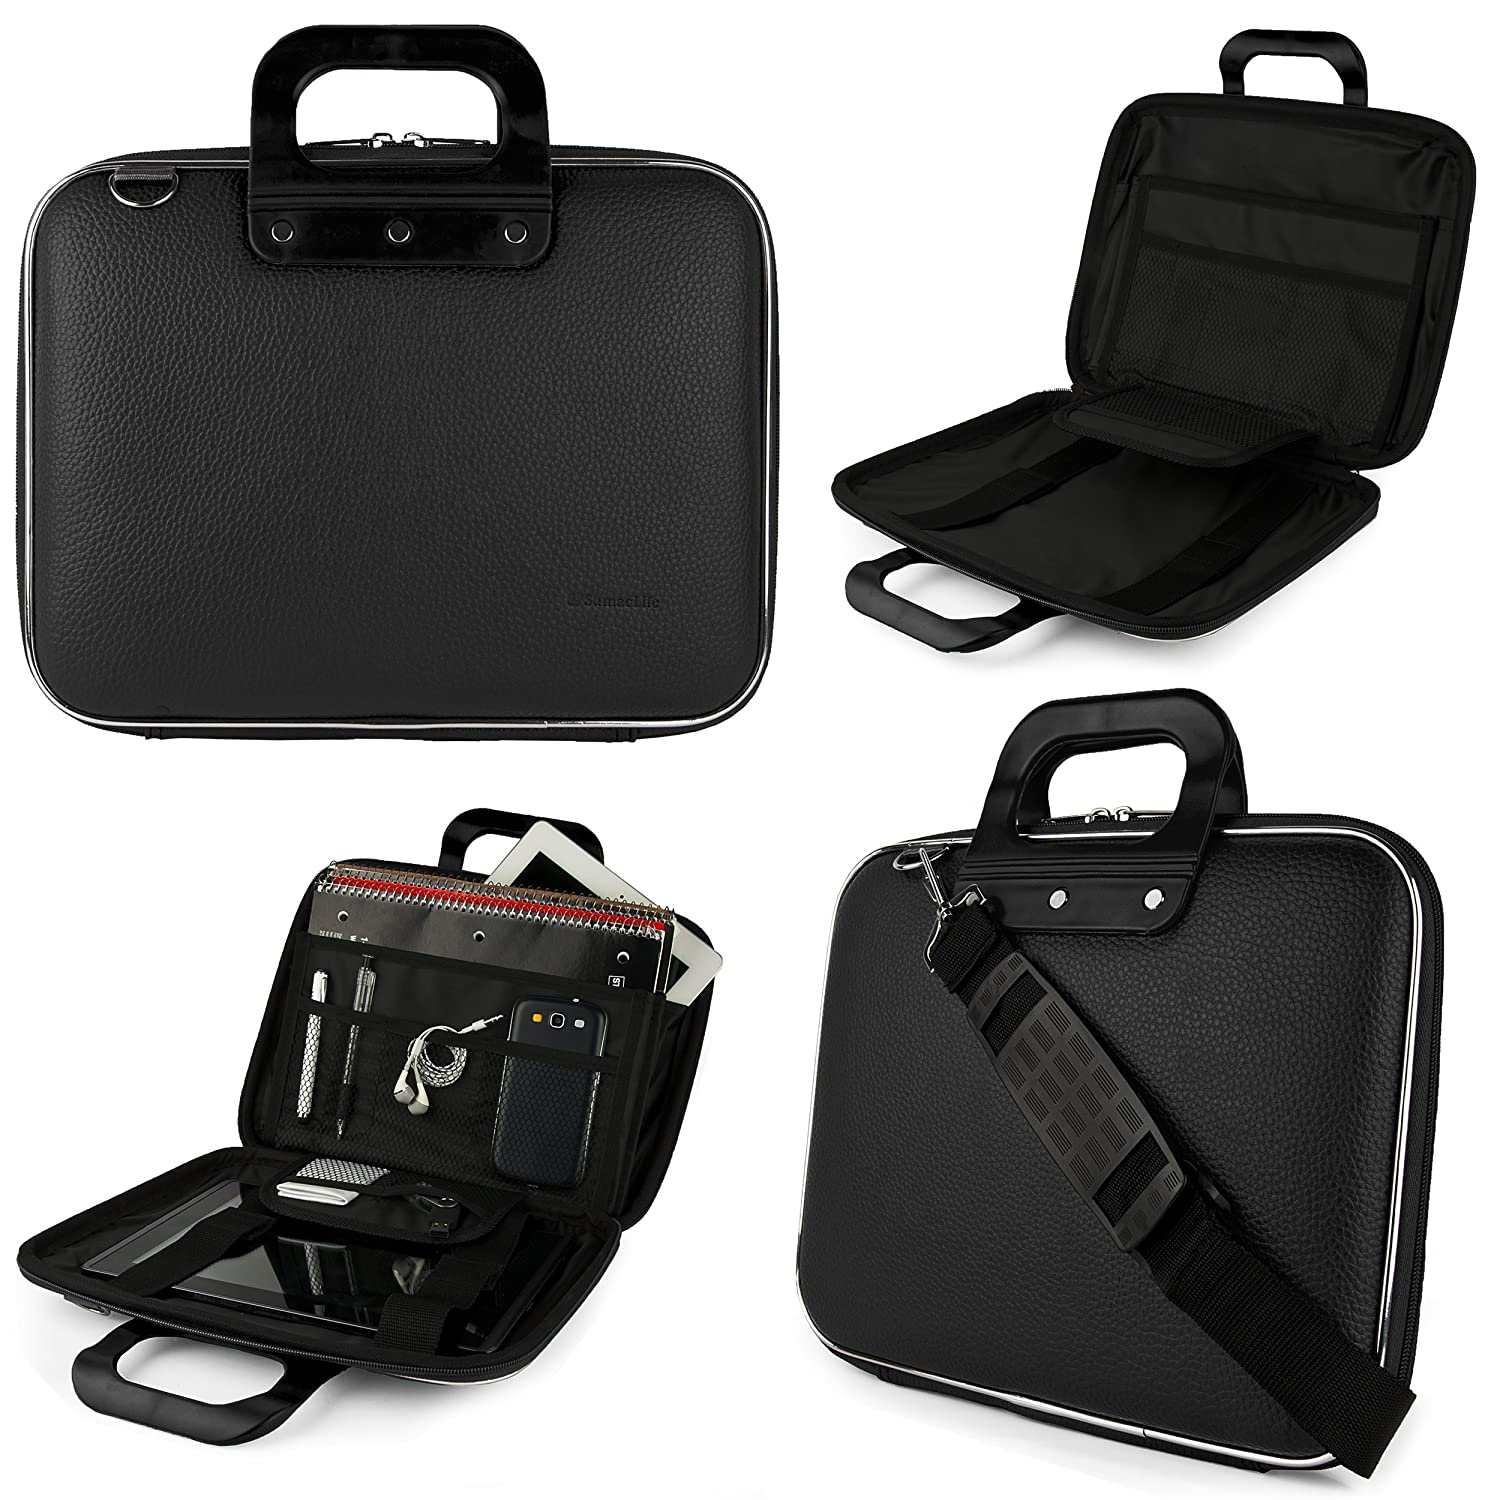 SumacLife Cady Shoulder Bag Briefcase for Toshiba 13.3 to 14 inch Laptops